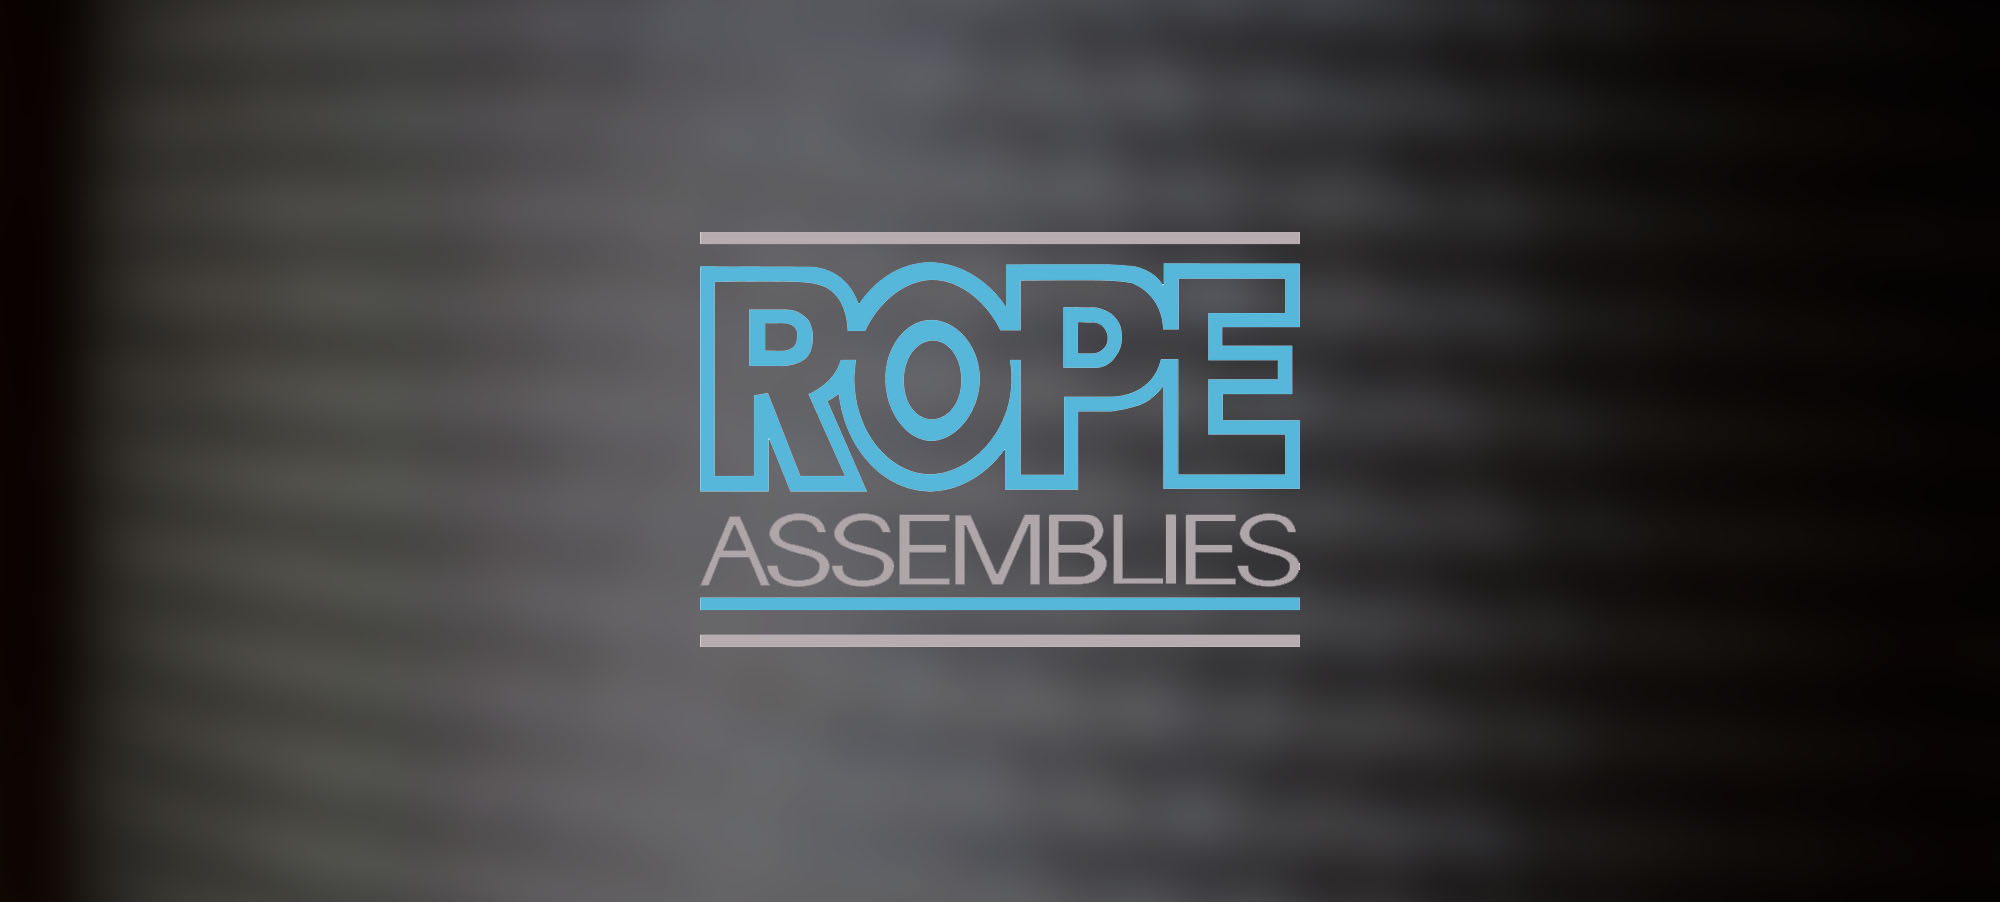 Rope Assemblies - Welcome to Rope Assemblies Ltd